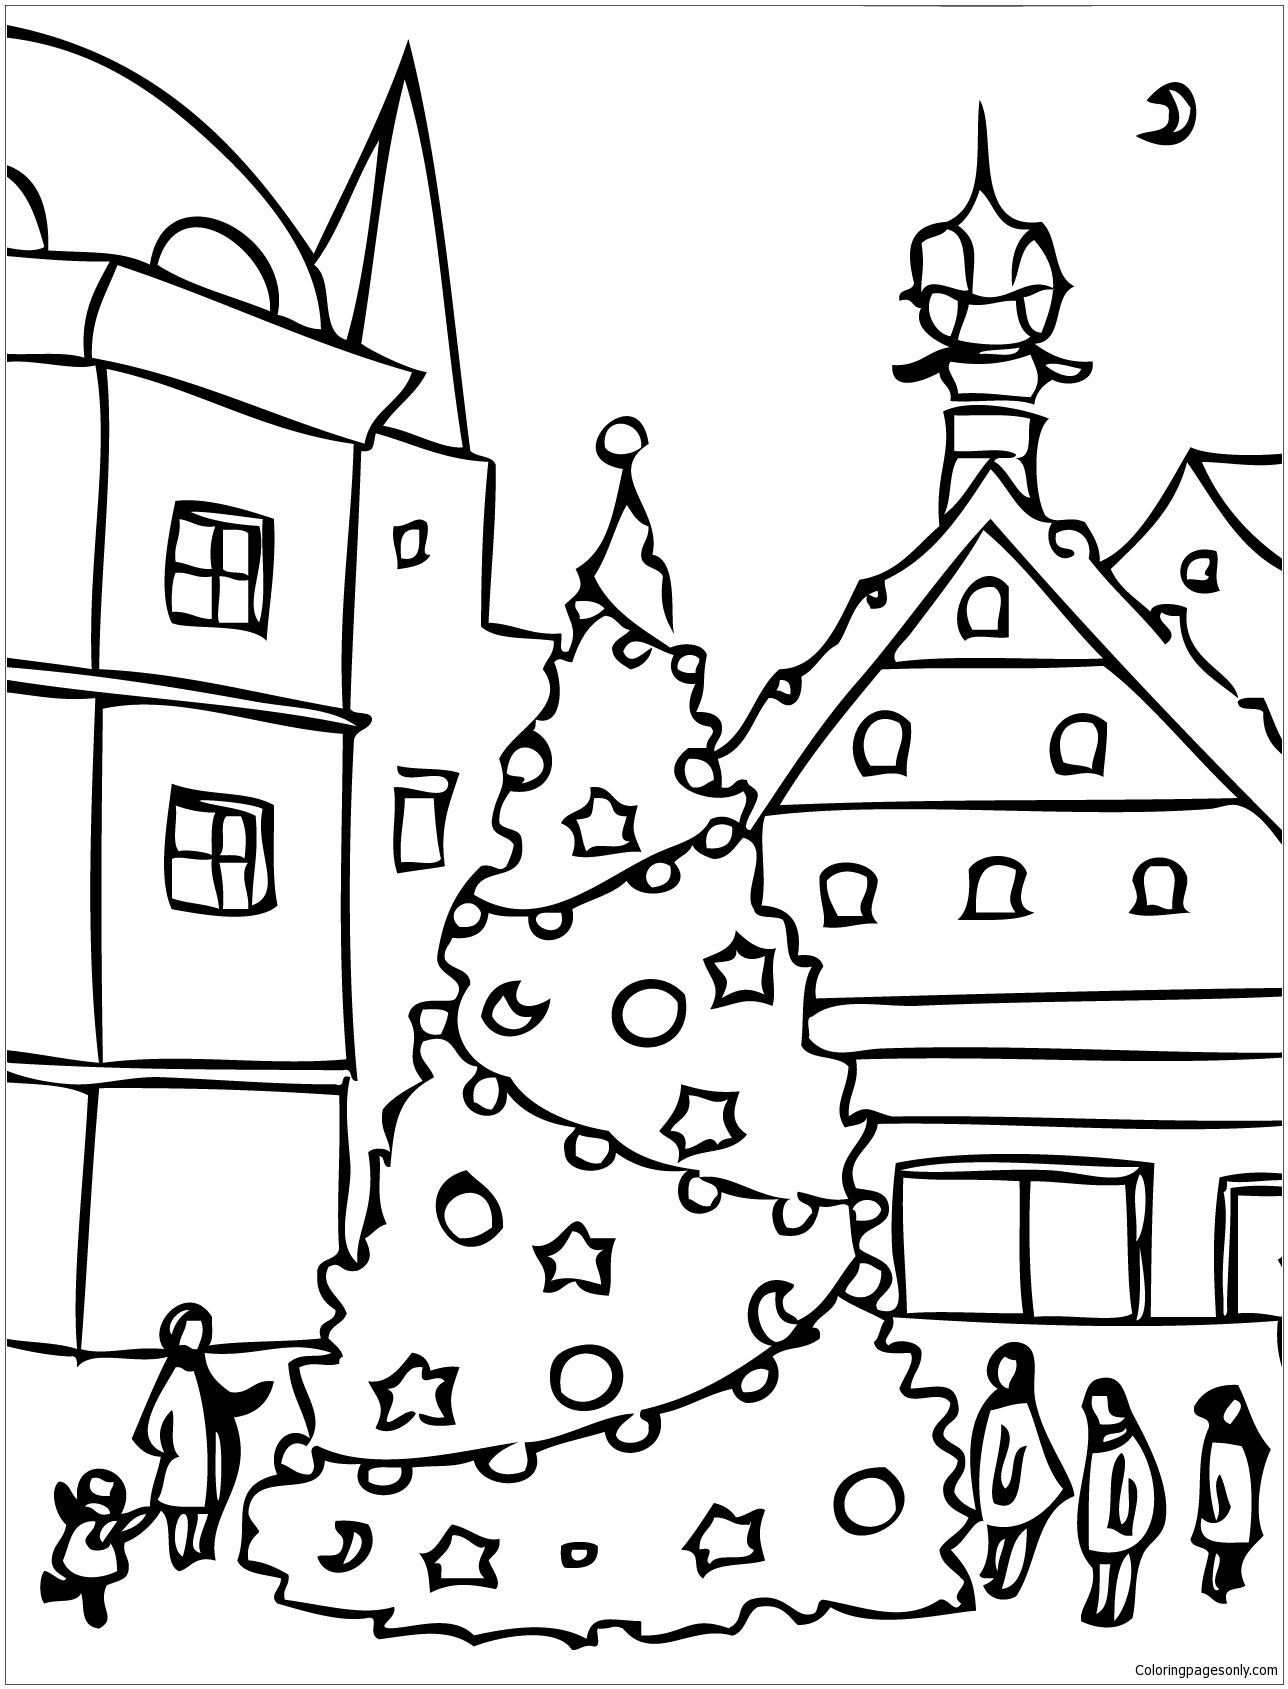 Christmas Day Drawing Images.Christmas Day Coloring Page Christmas Coloring Pages